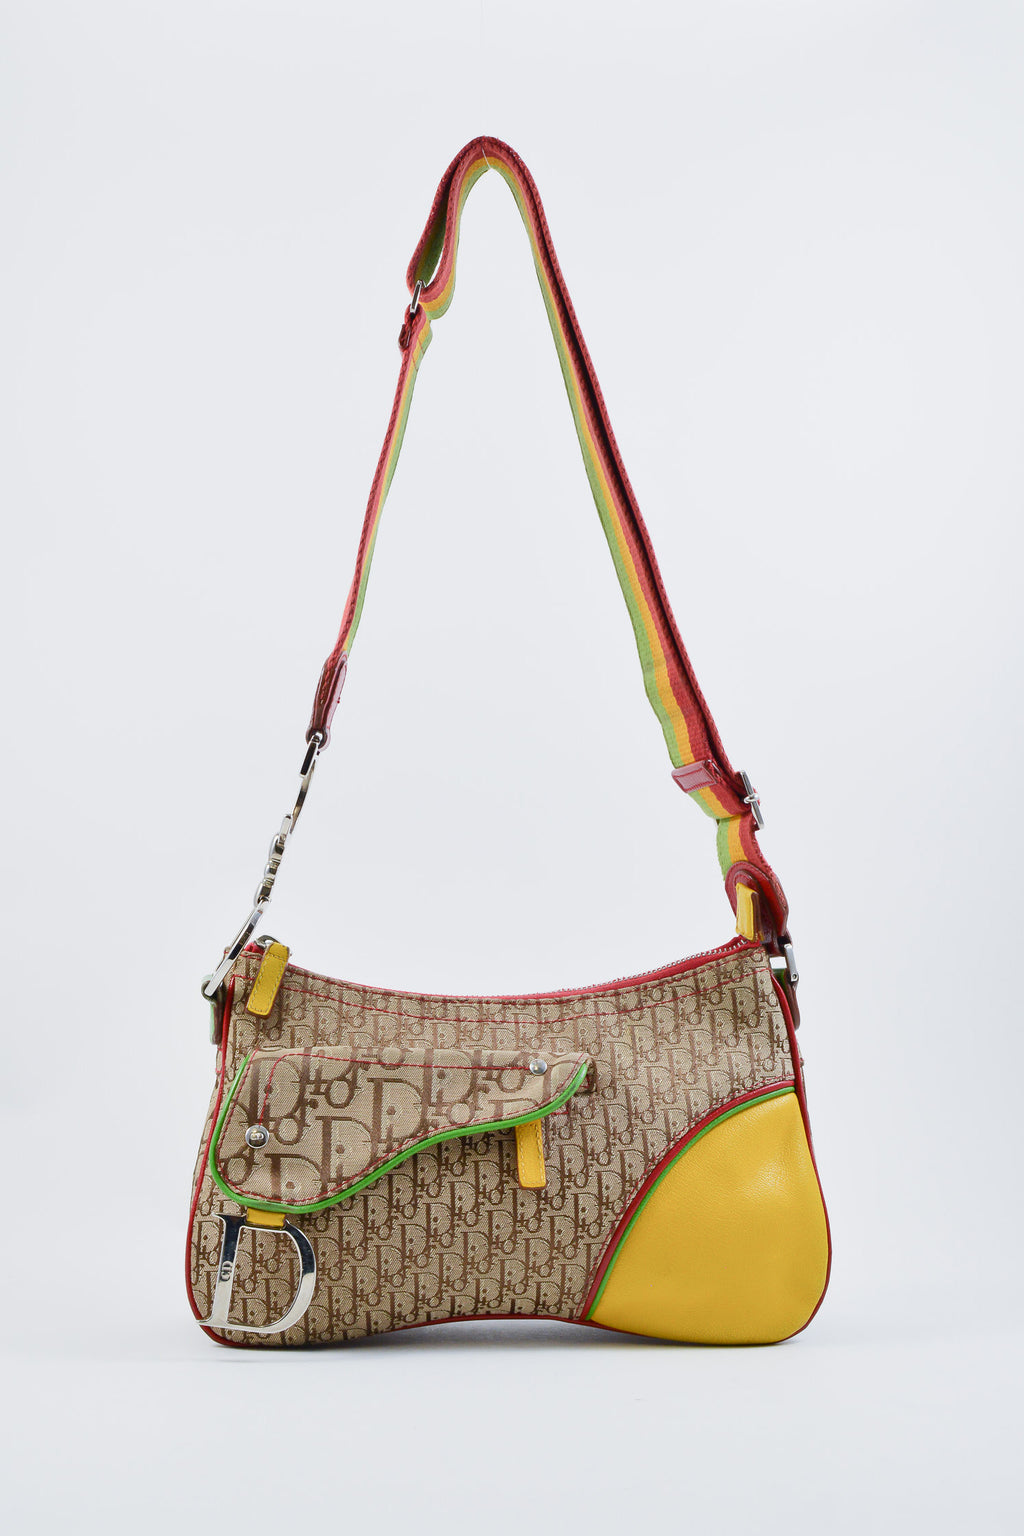 Dior Diorissimo Monogram Rasta Shoulder Bag